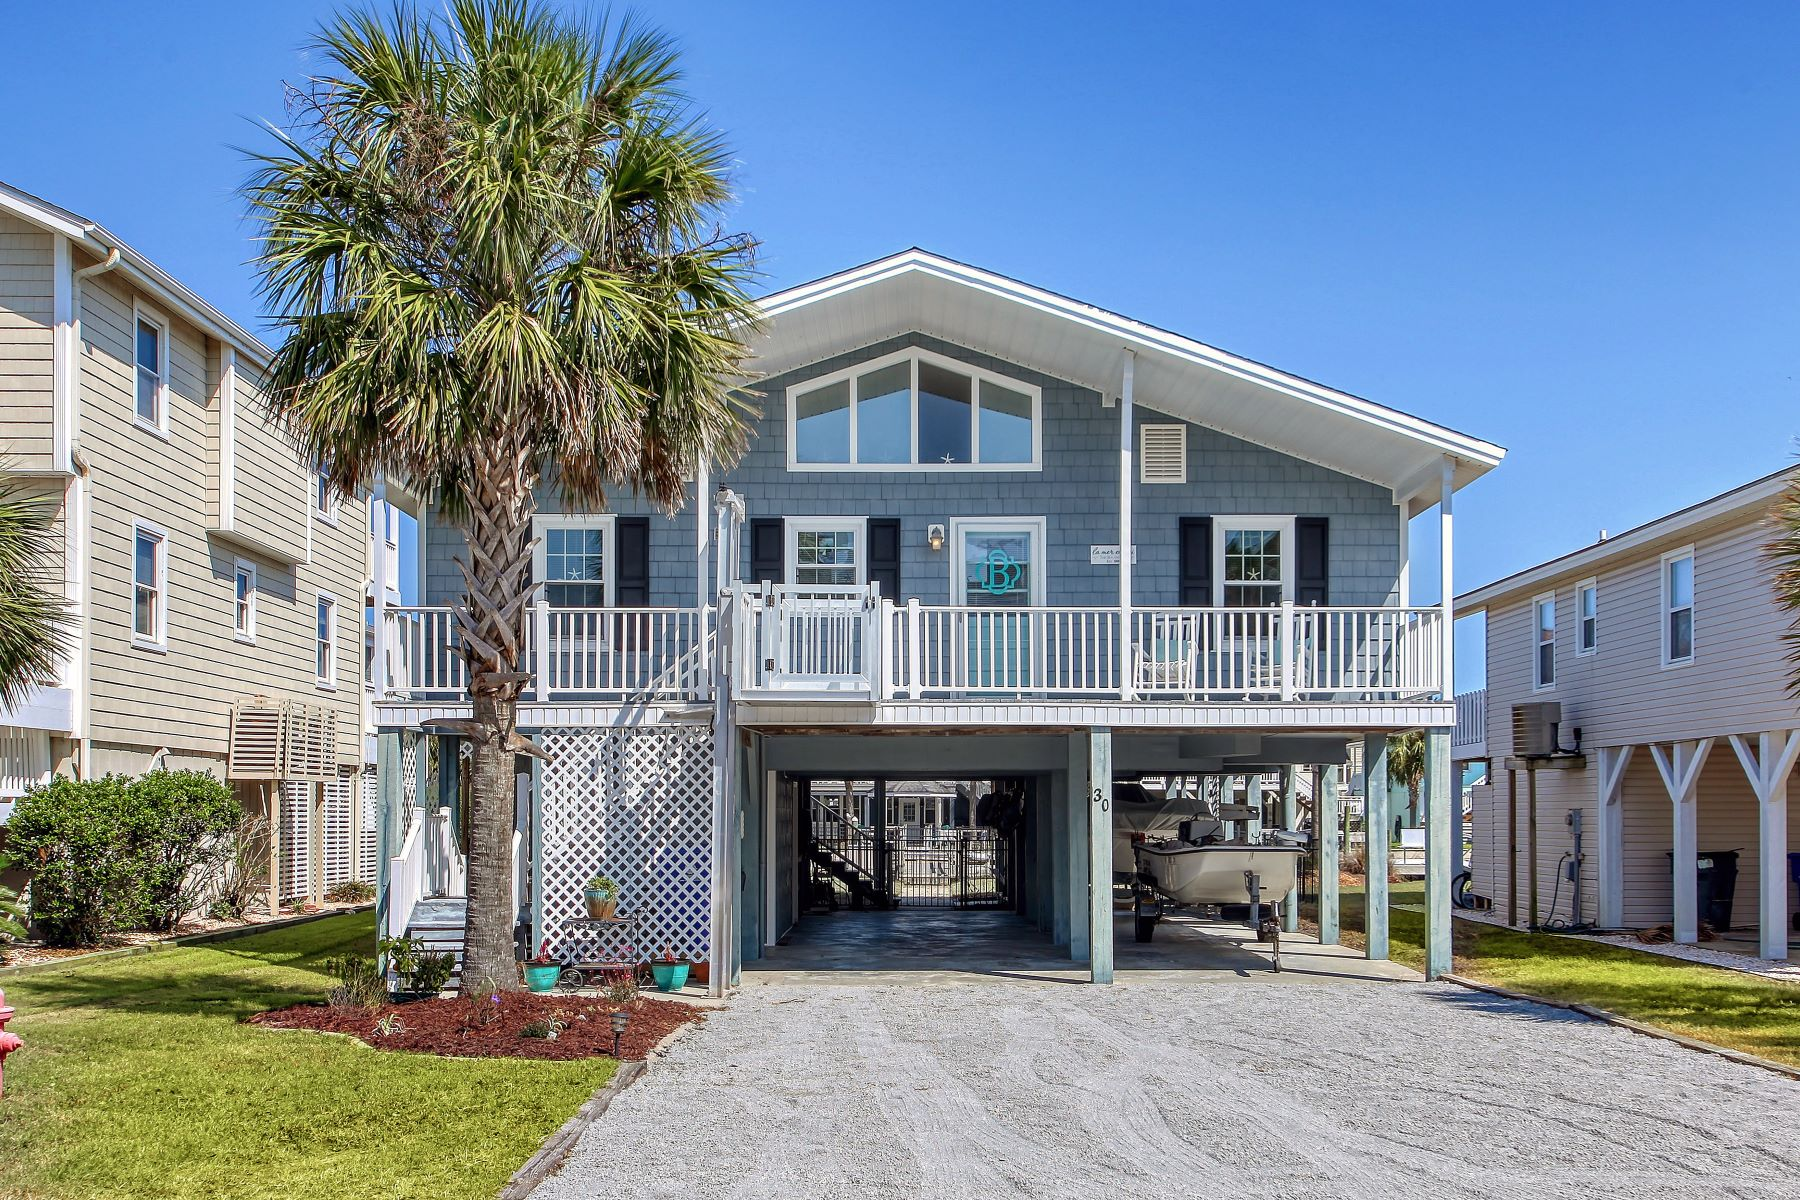 Single Family Homes for Active at Charming and Bright Canal Cottage 30 Richmond Street Ocean Isle Beach, North Carolina 28469 United States